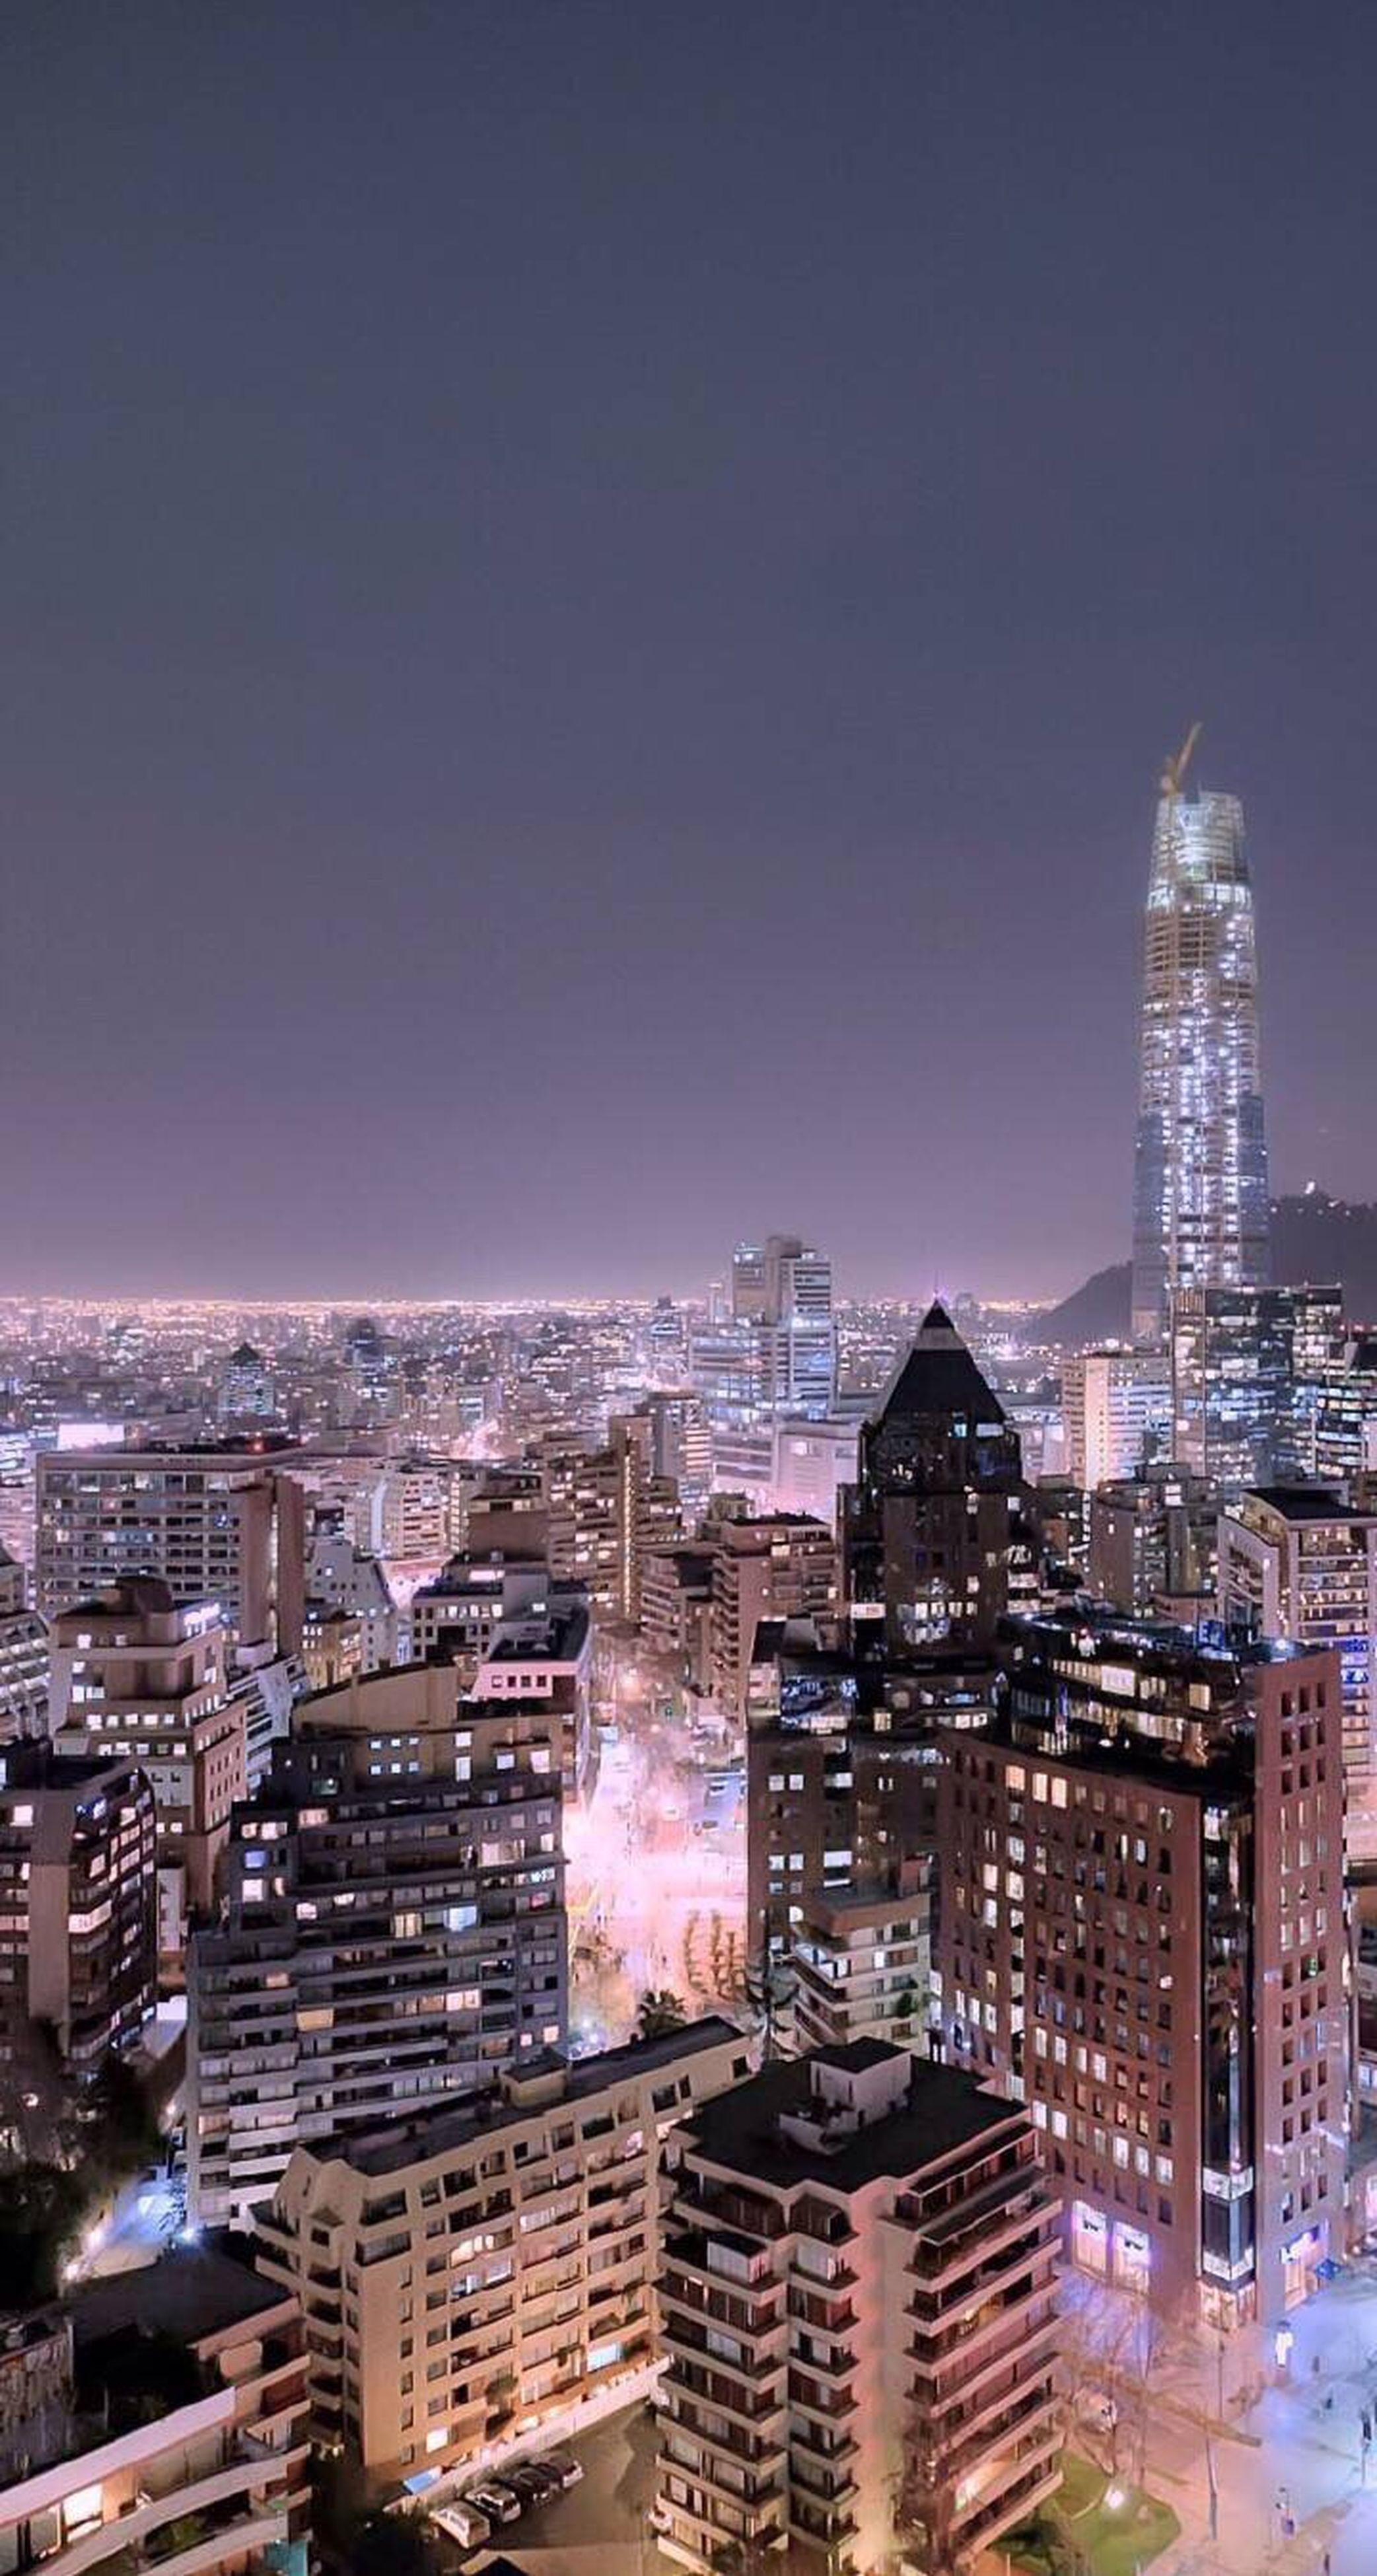 cityscape, city, building exterior, architecture, built structure, crowded, skyscraper, clear sky, tower, modern, illuminated, tall - high, high angle view, copy space, office building, residential district, capital cities, night, aerial view, city life